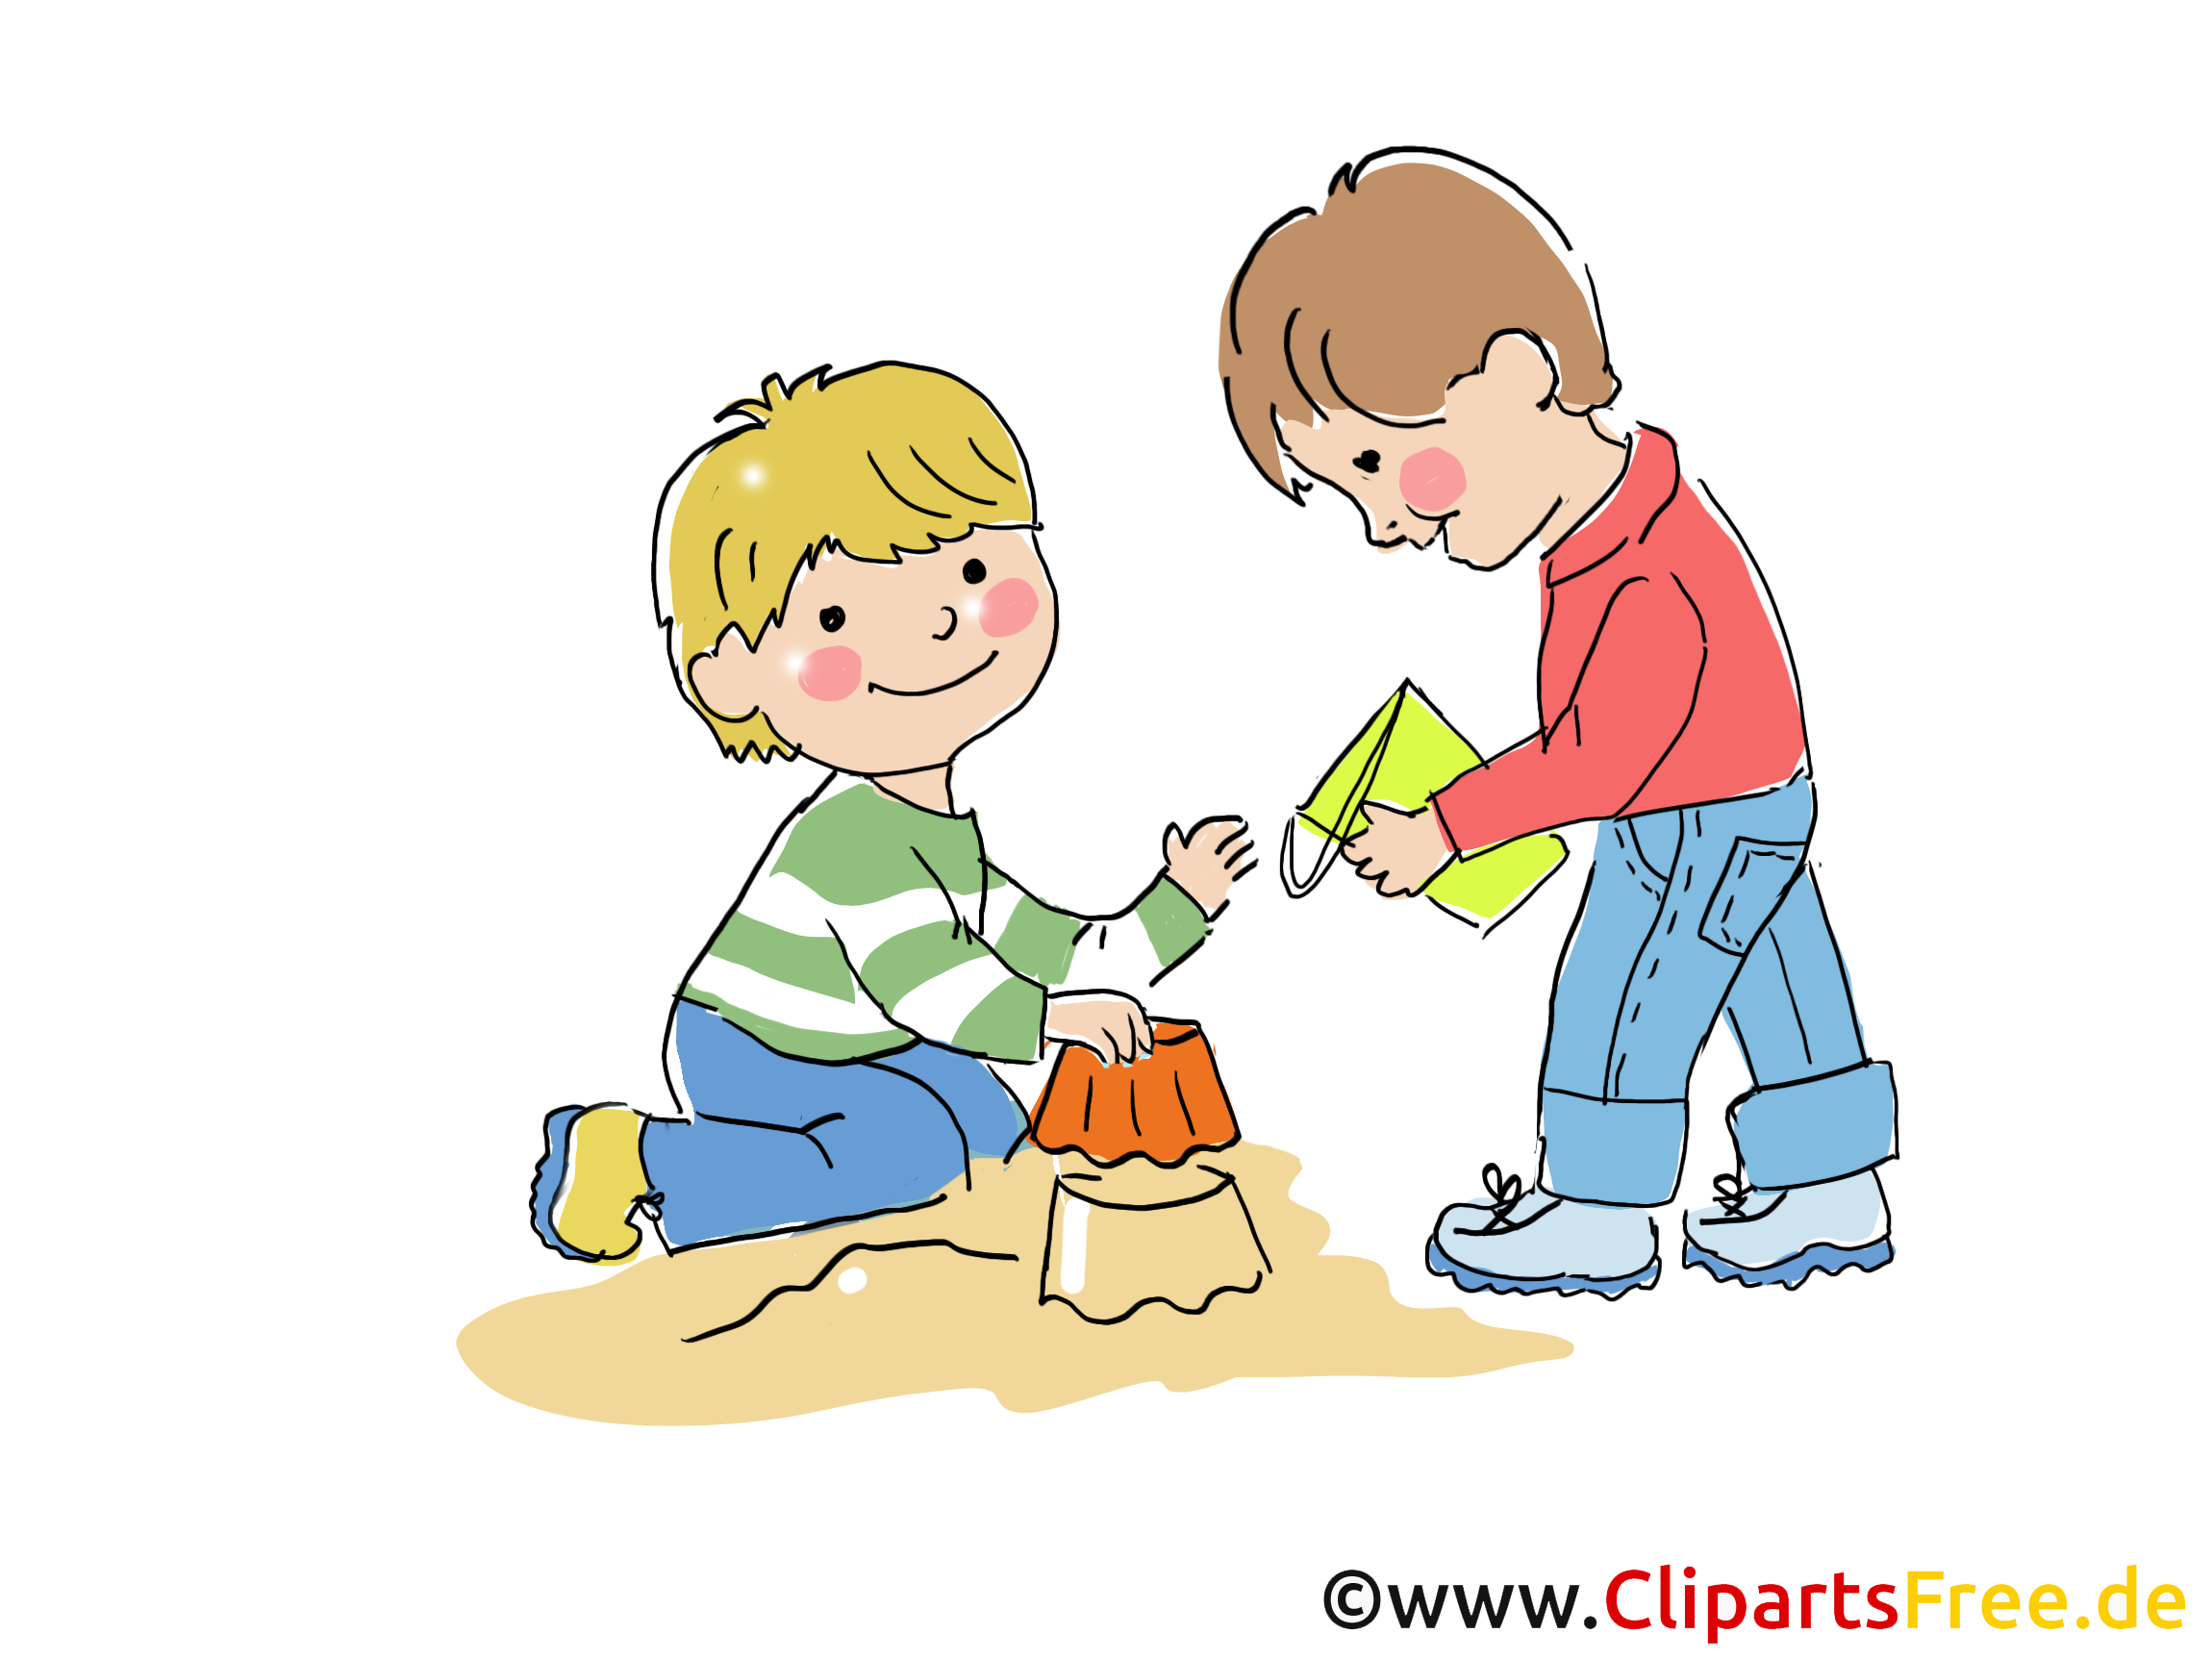 Kinder im garten clipart clipart free Kindergarten Bilder, Cliparts, Cartoons, Grafiken, Illustrationen ... clipart free